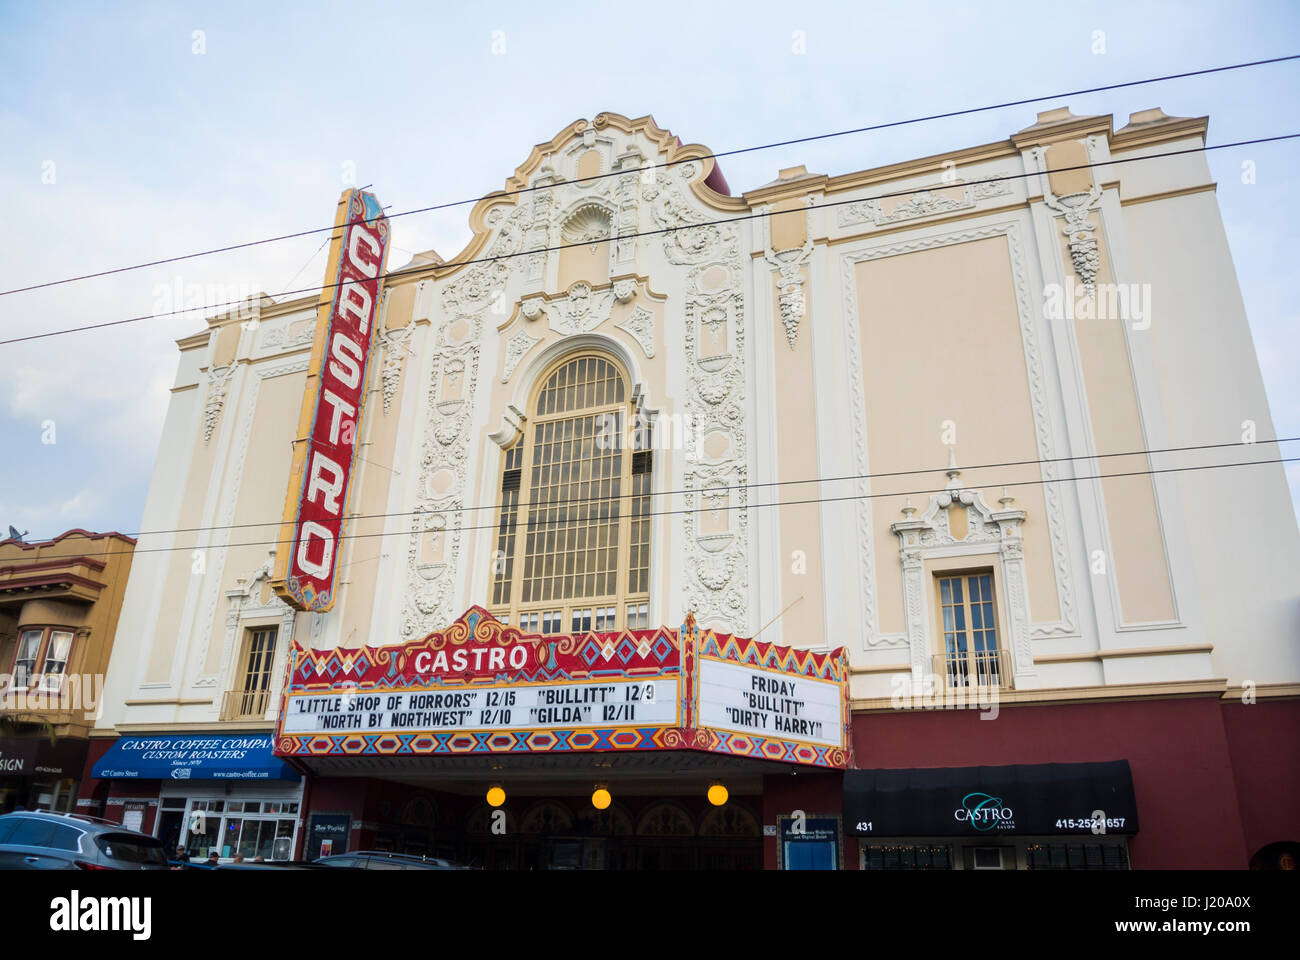 castro movie theater san francisco usa stock photo: 138920122 - alamy